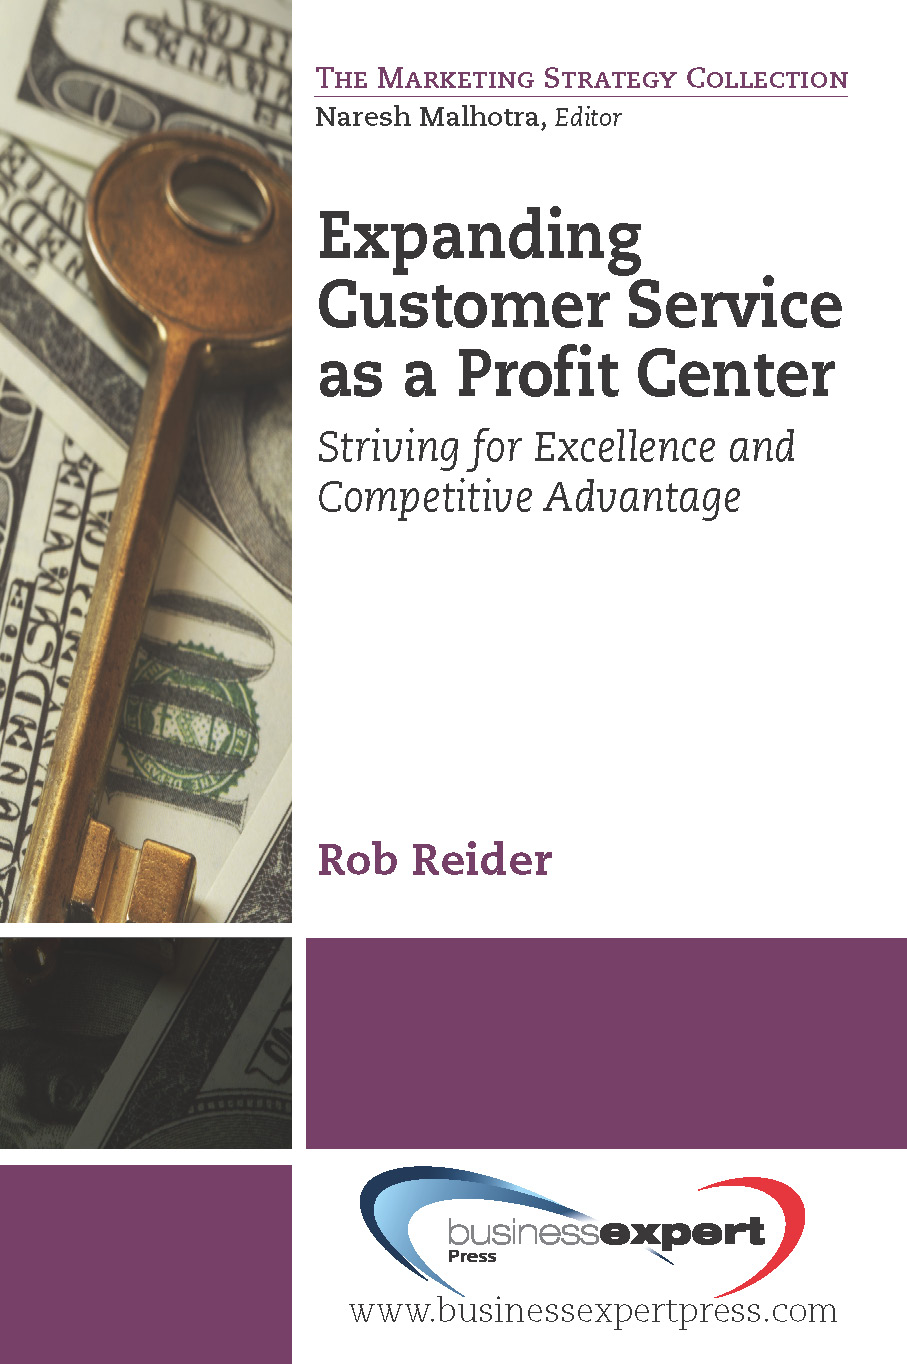 Expanding CustomerService as a Profit Center: Striving for Excellence and Competitive Advantage